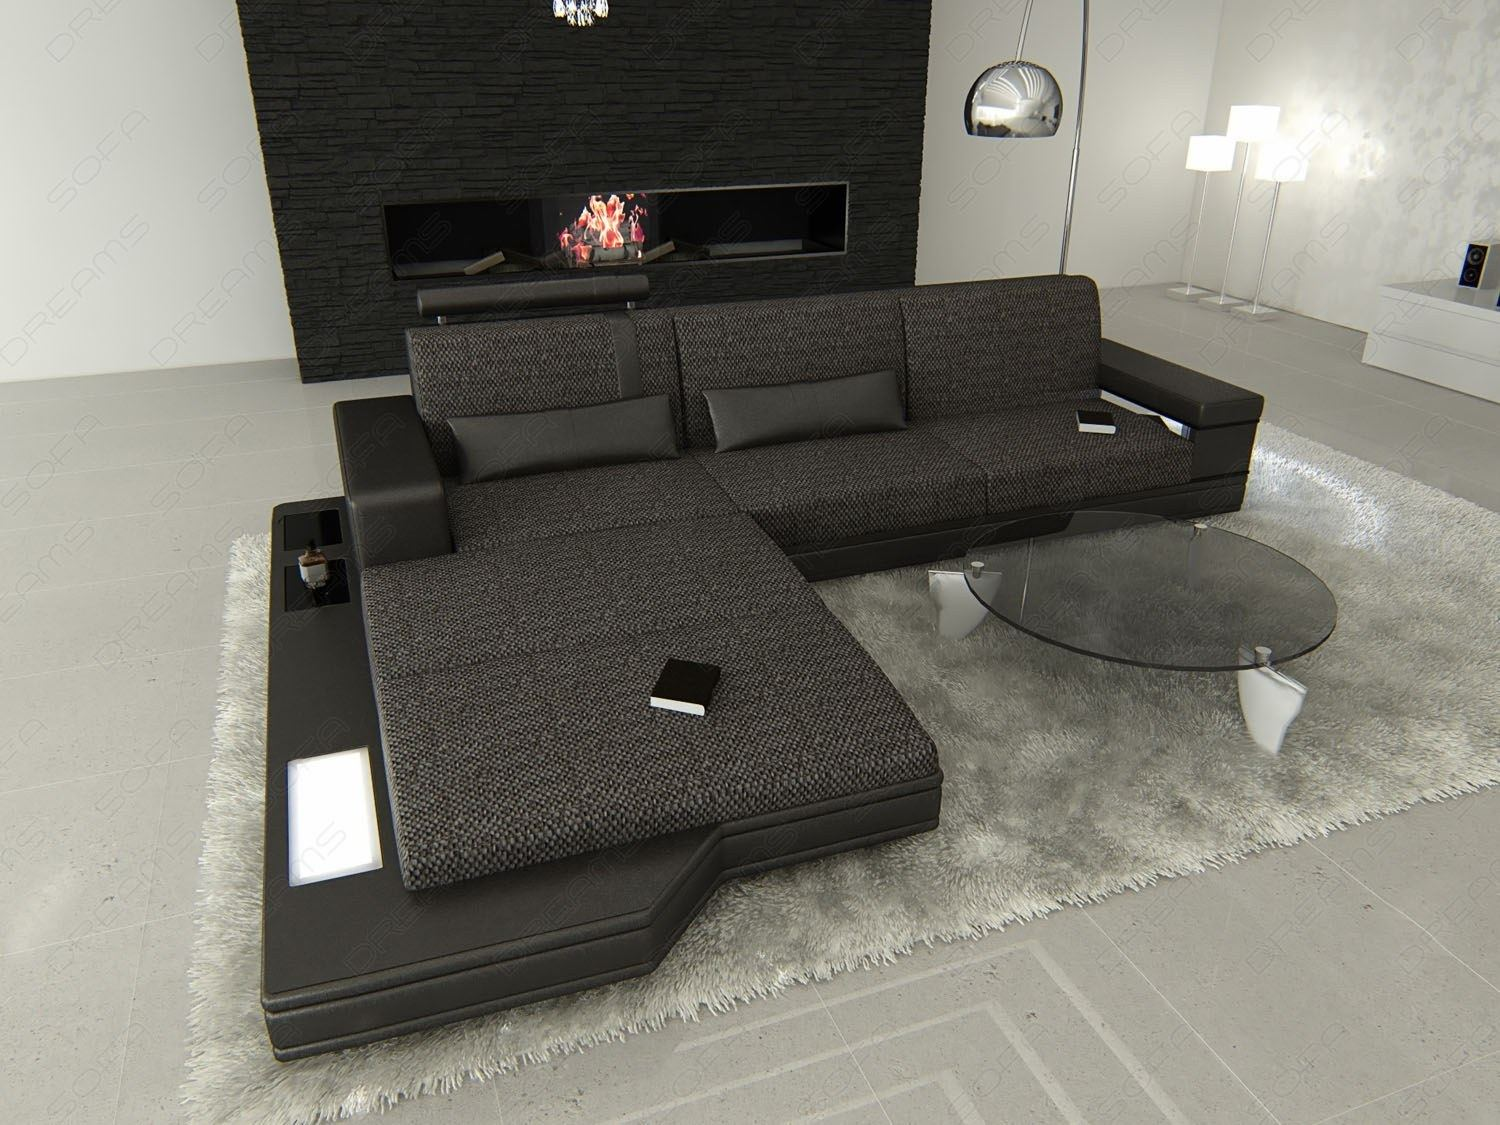 fabric sectional sofa messana l shaped with lights. Black Bedroom Furniture Sets. Home Design Ideas